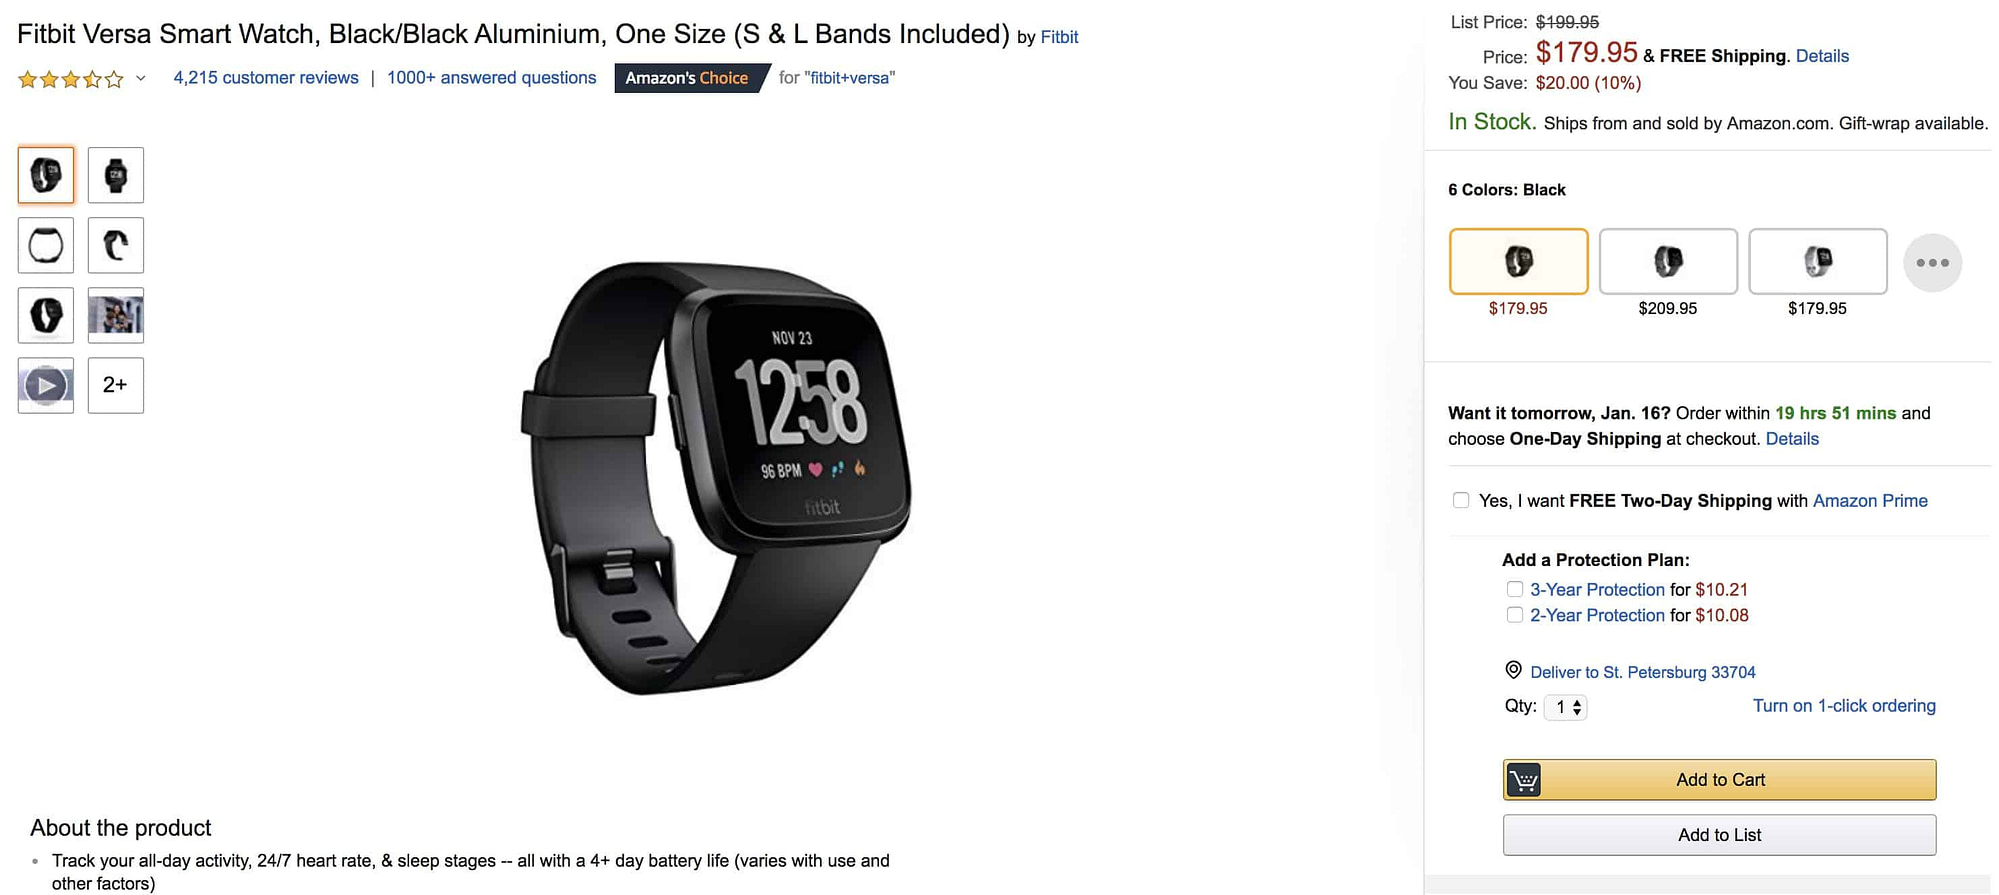 Fitbit Versa Amazon Product Page